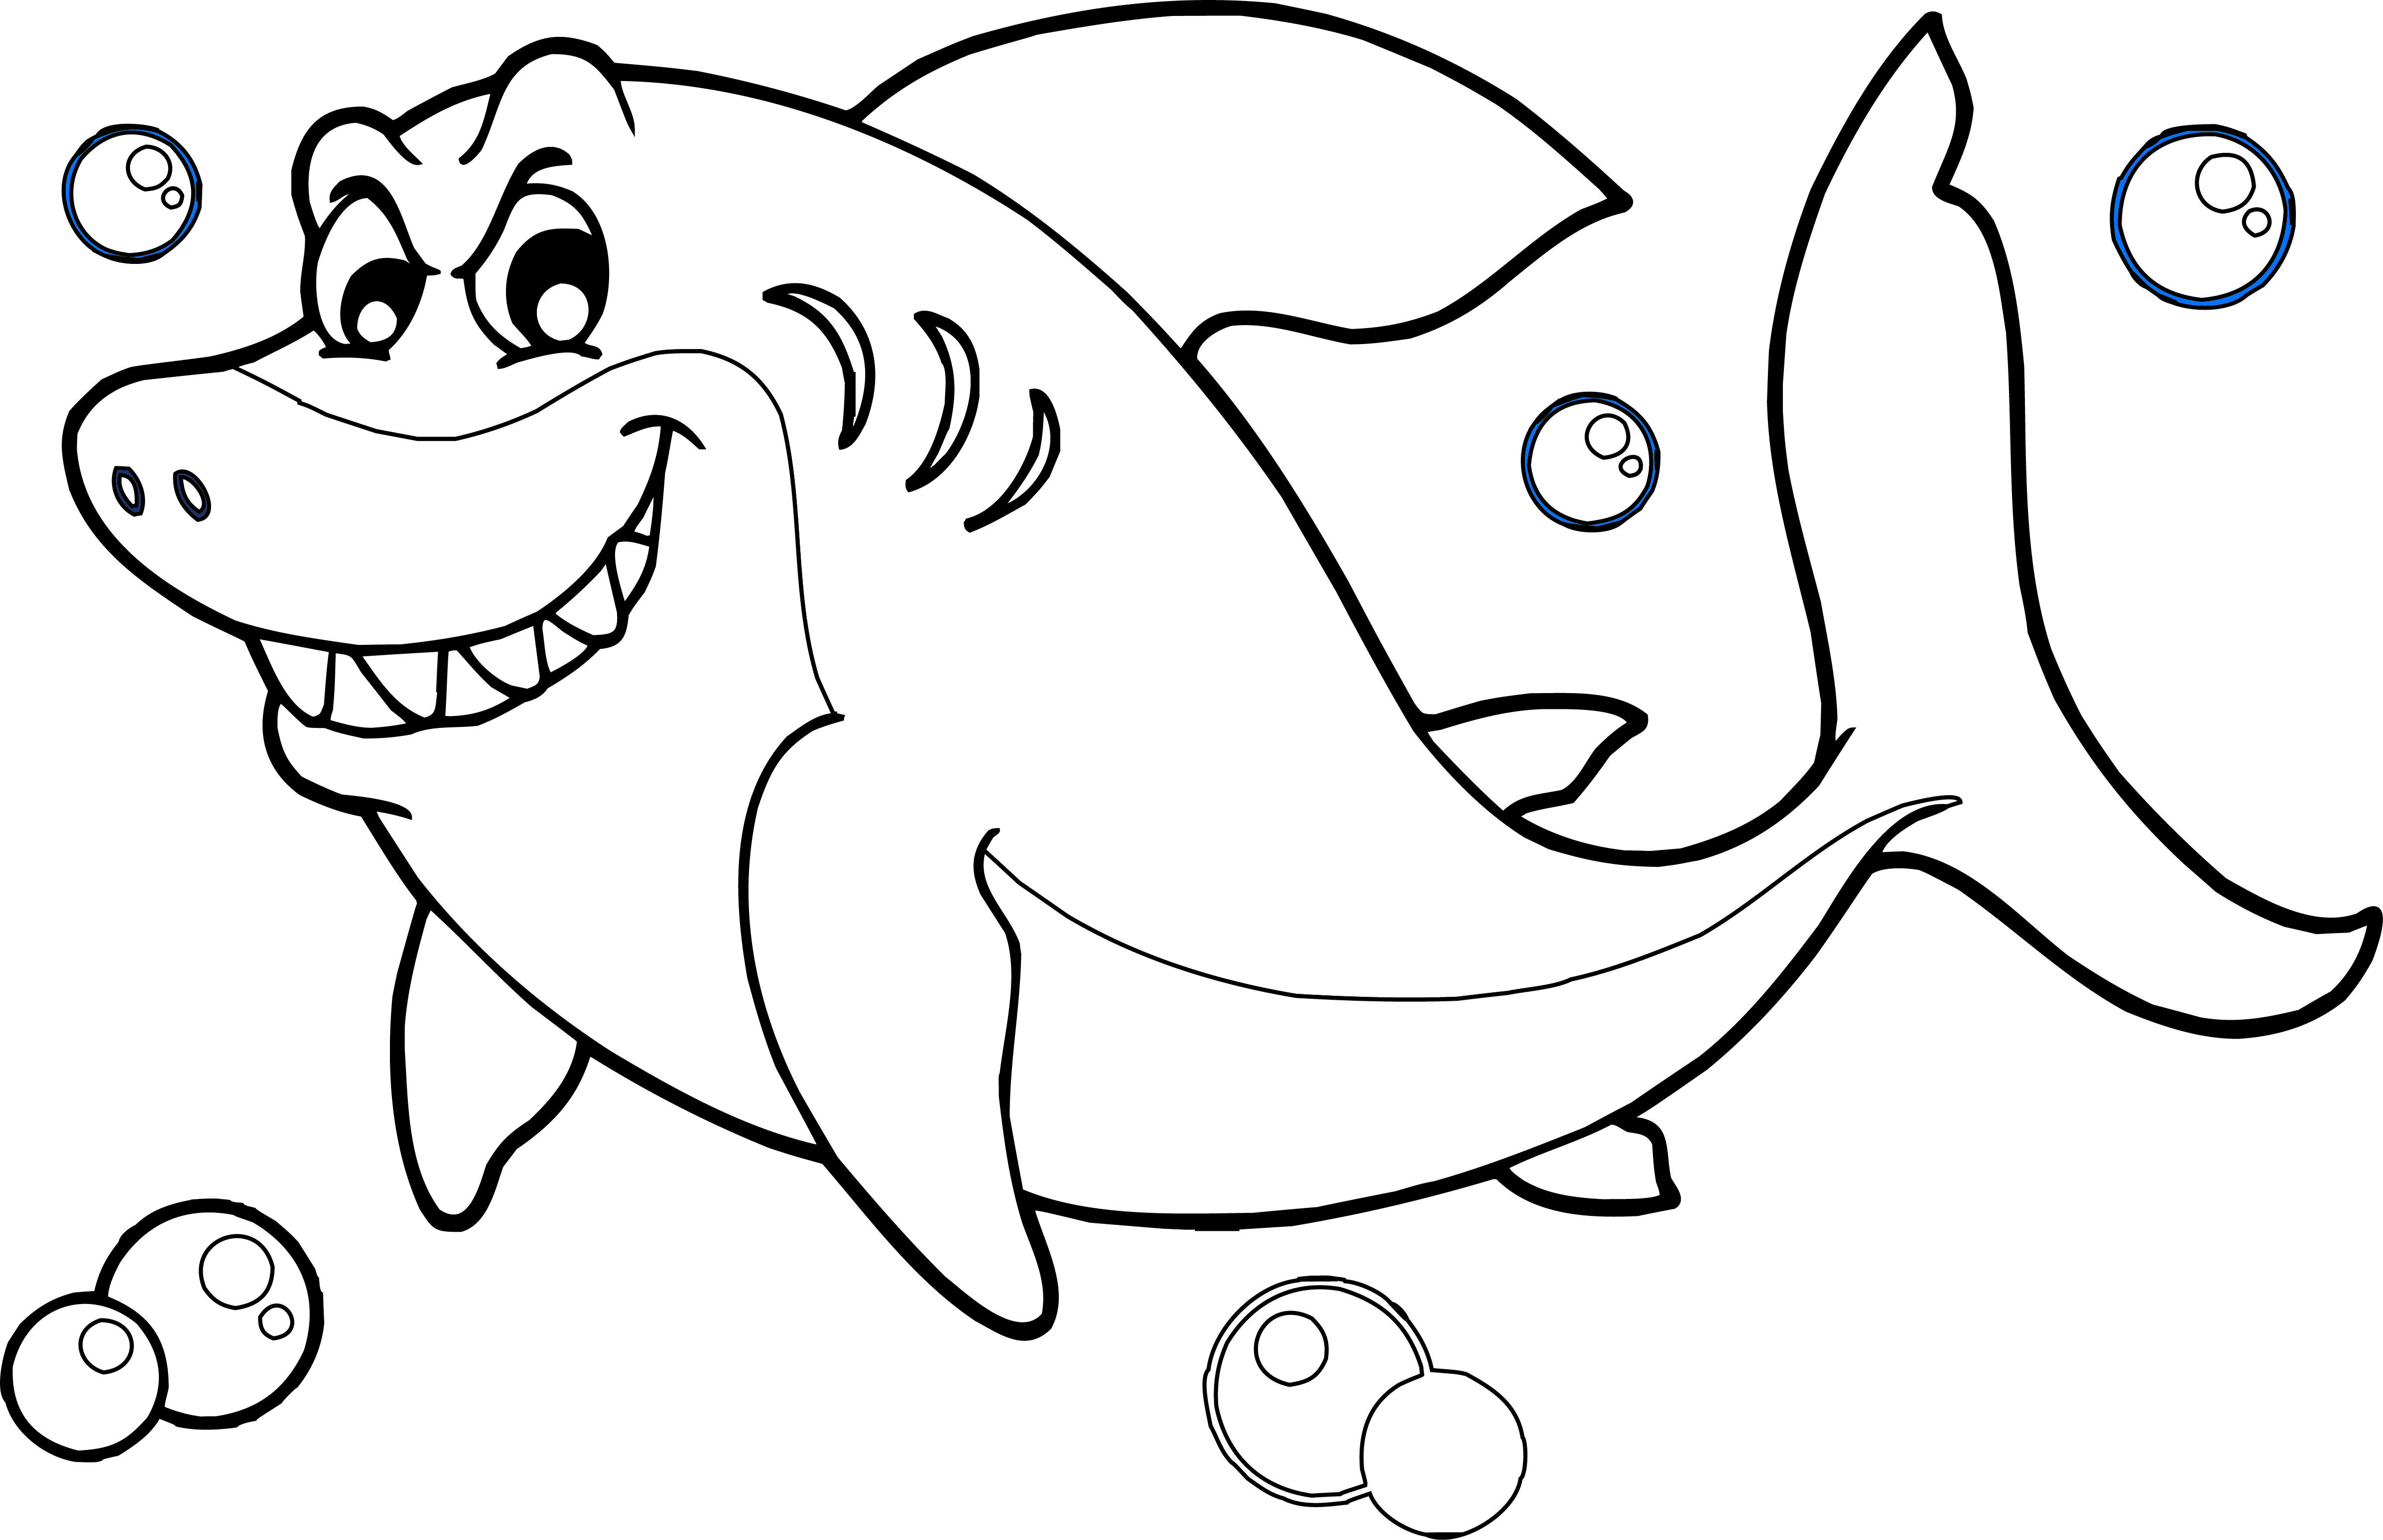 Shark Coloring Pages Shark Coloring Pages Coloring Books Coloring Pages